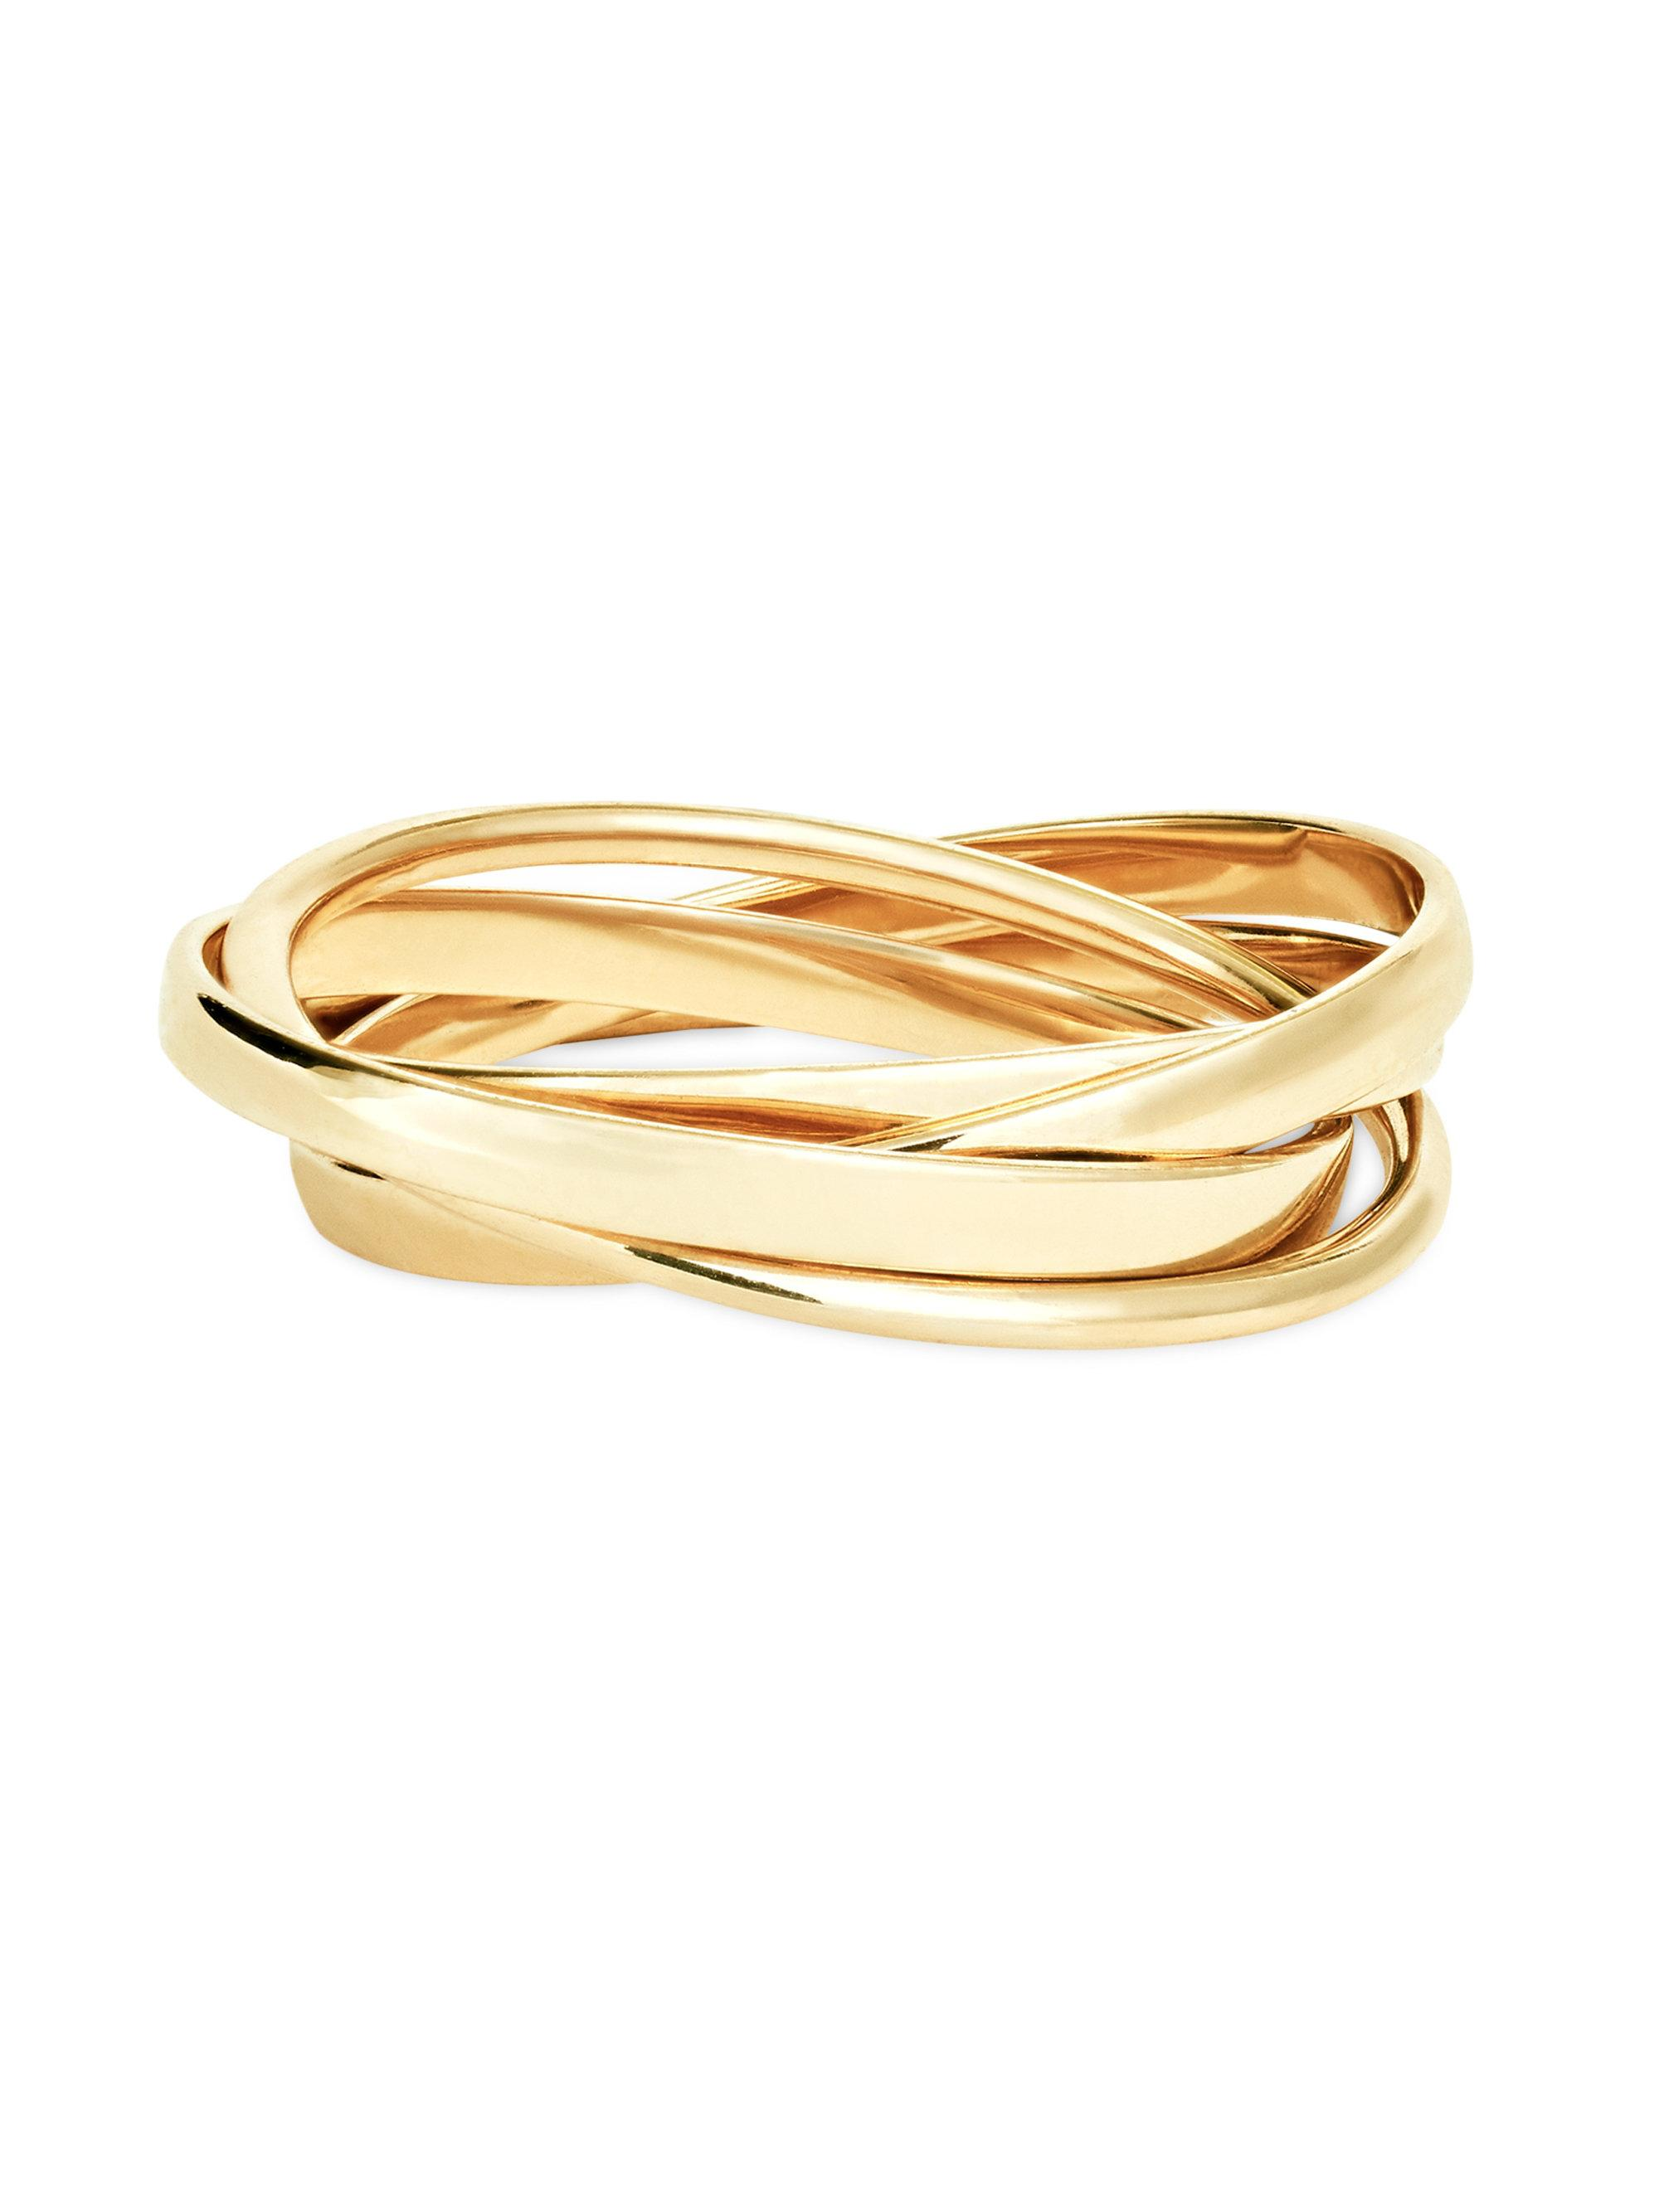 Lana Jewelry 14K Gold Bangle Set